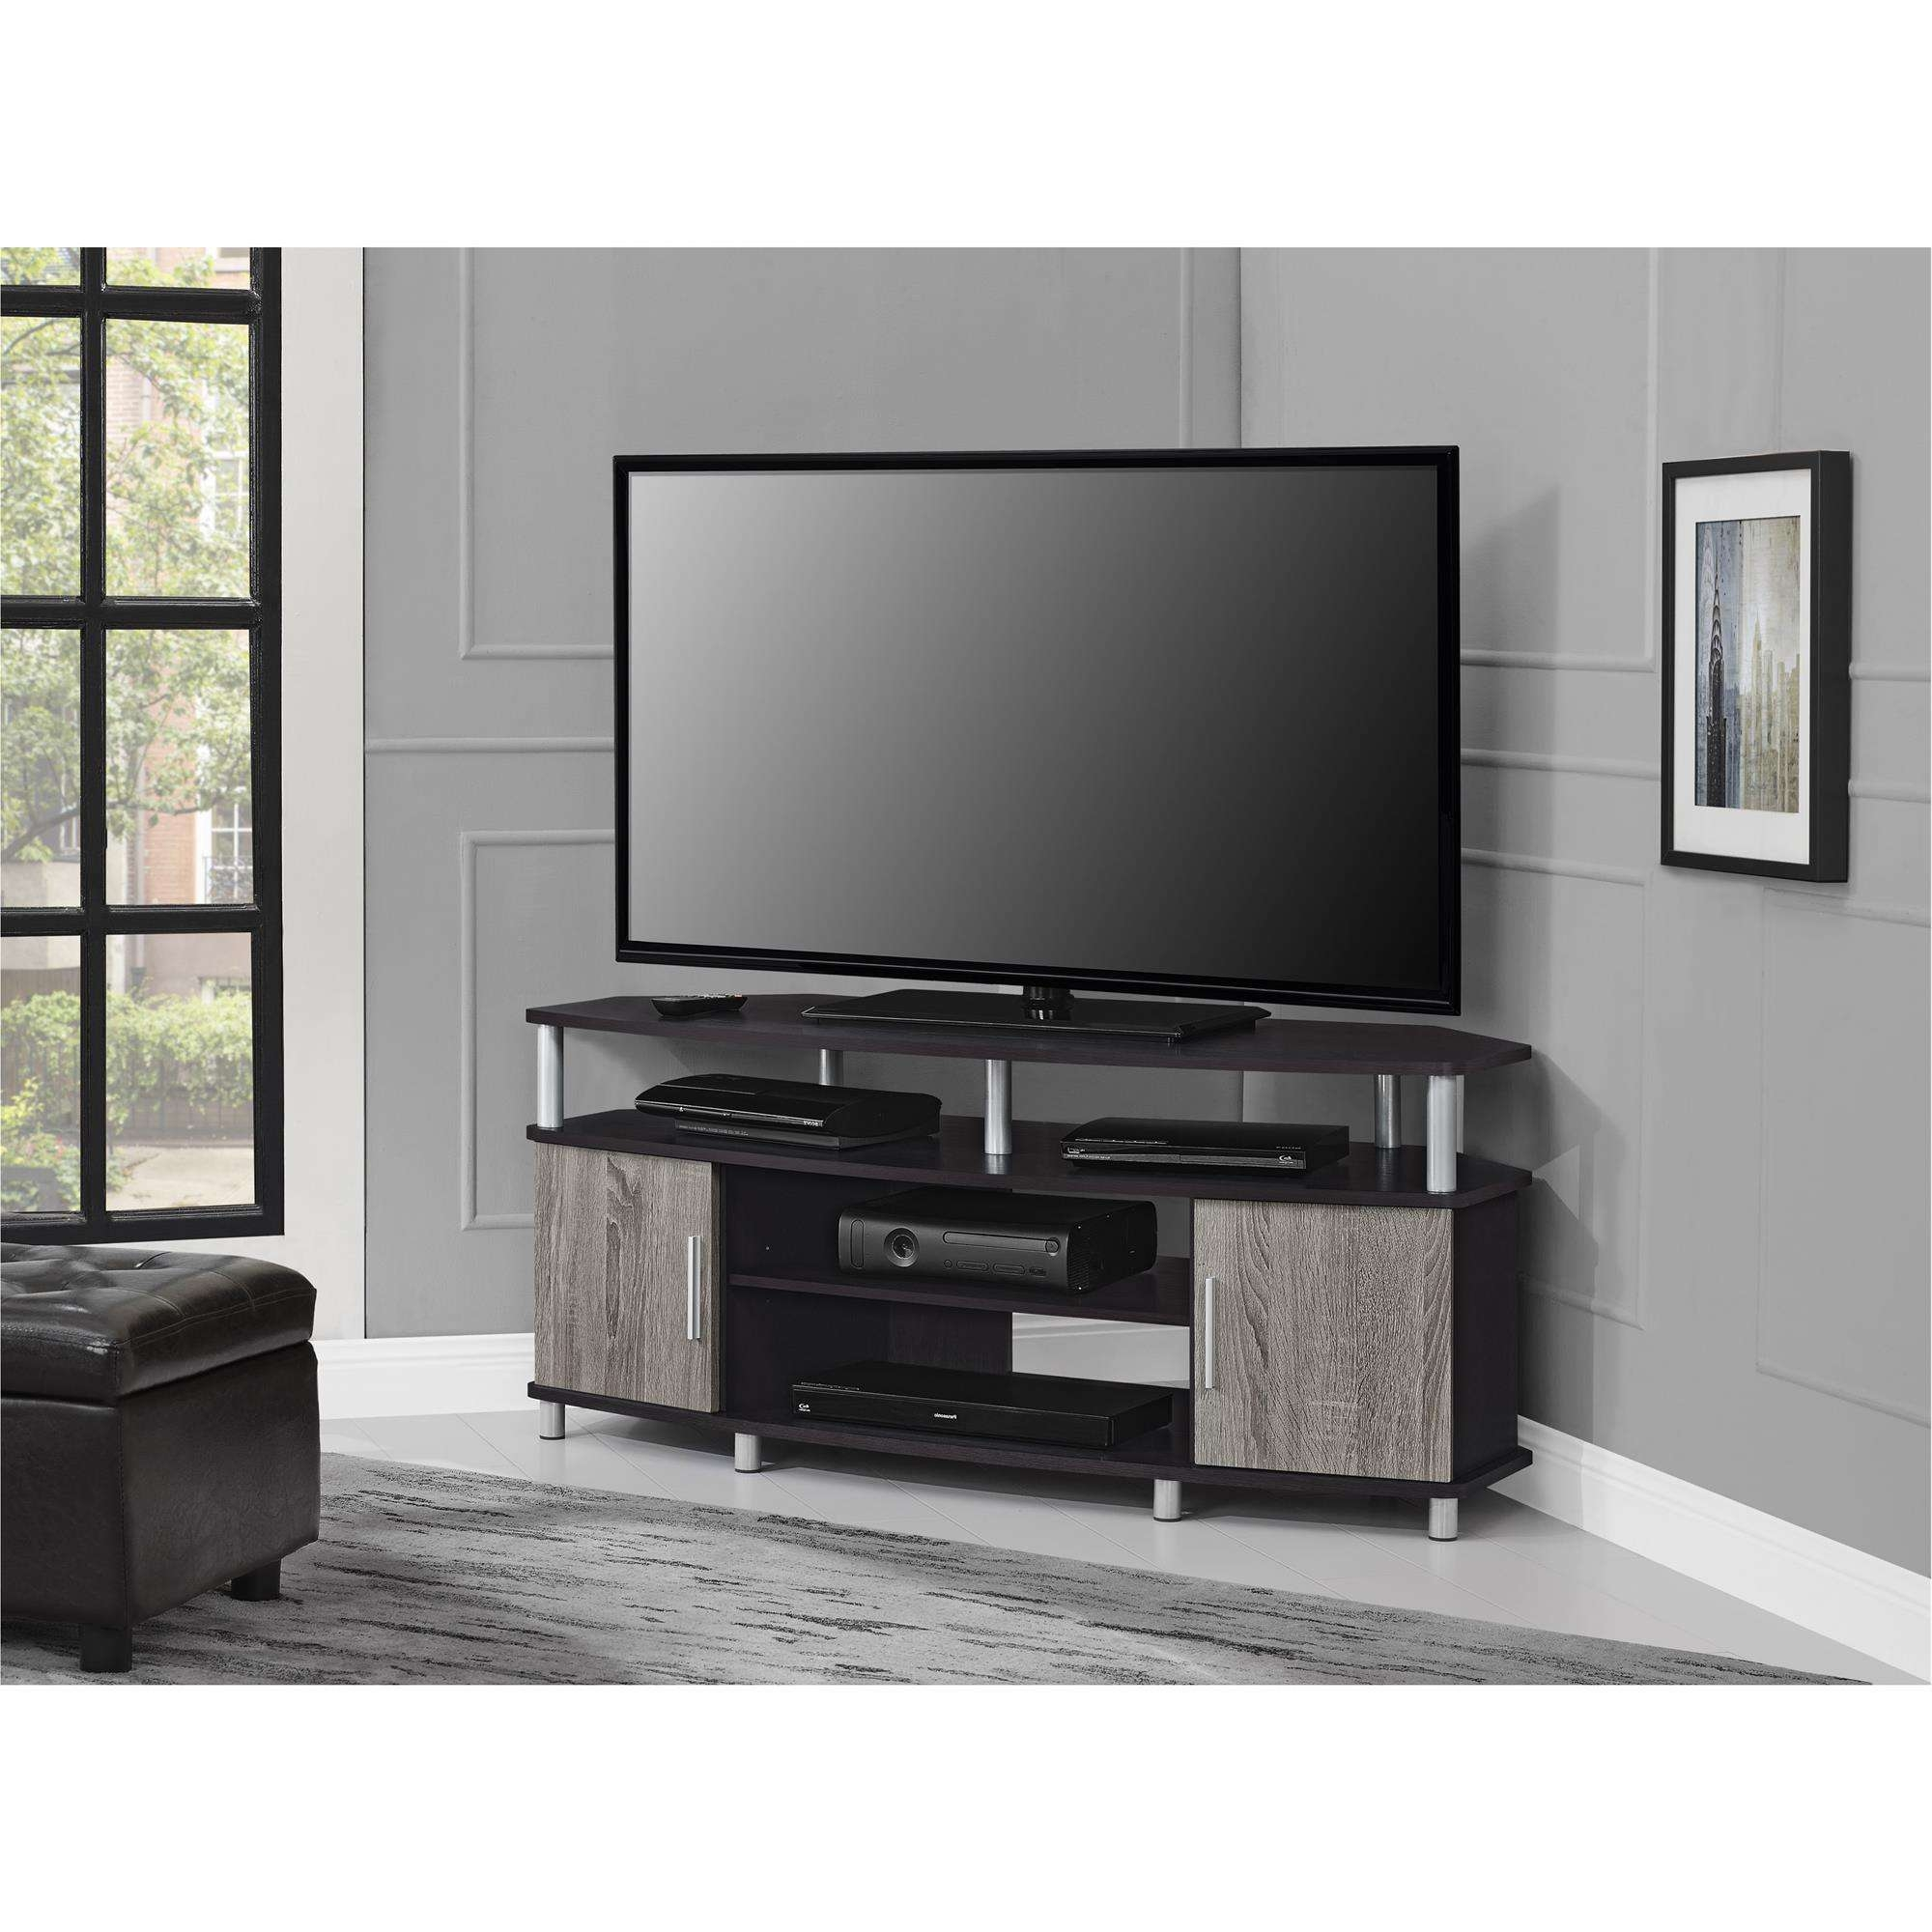 "Ameriwood Home Carson Corner Tv Stand For Tvs Up To 50"" Wide For Corner Tv Stands For 50 Inch Tv (View 4 of 20)"